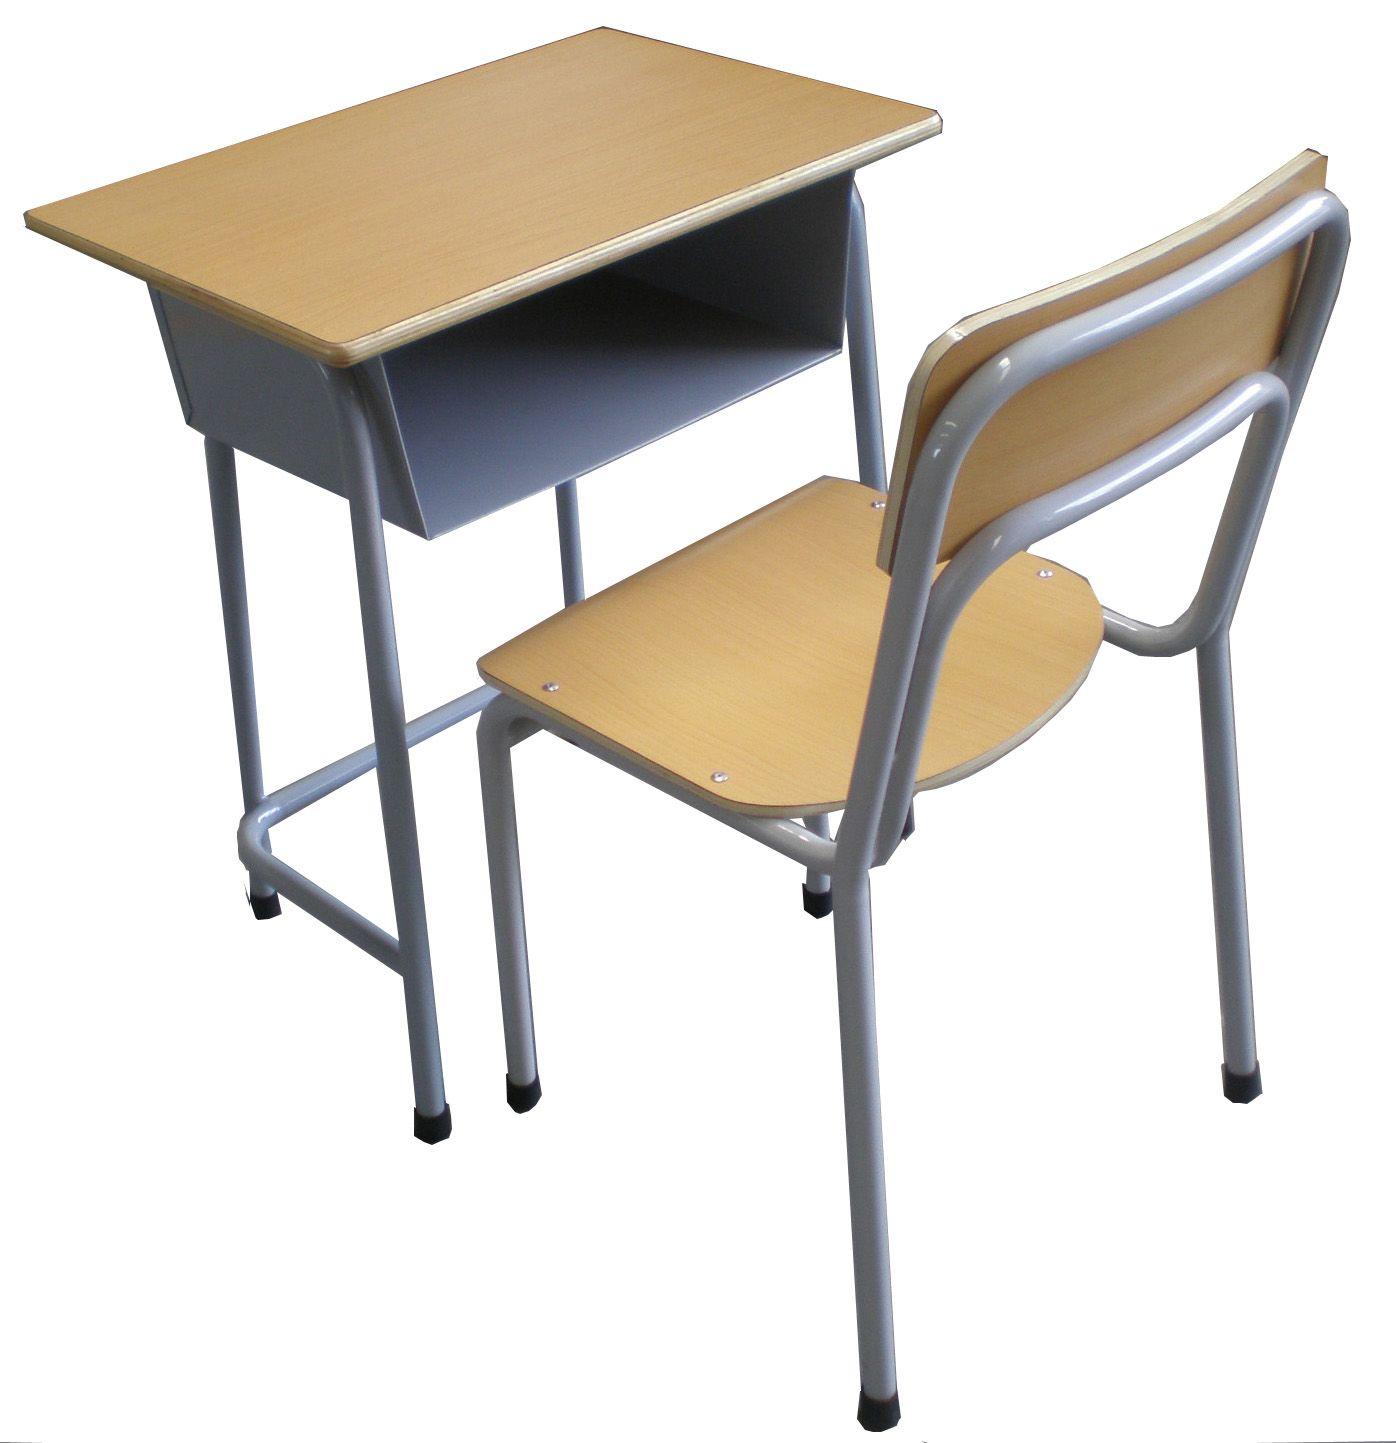 school desk. Cheap Price Factory Study Desk Single School Student And Chair Set For Furniture - Buy Chair,School Furniture,Study Product